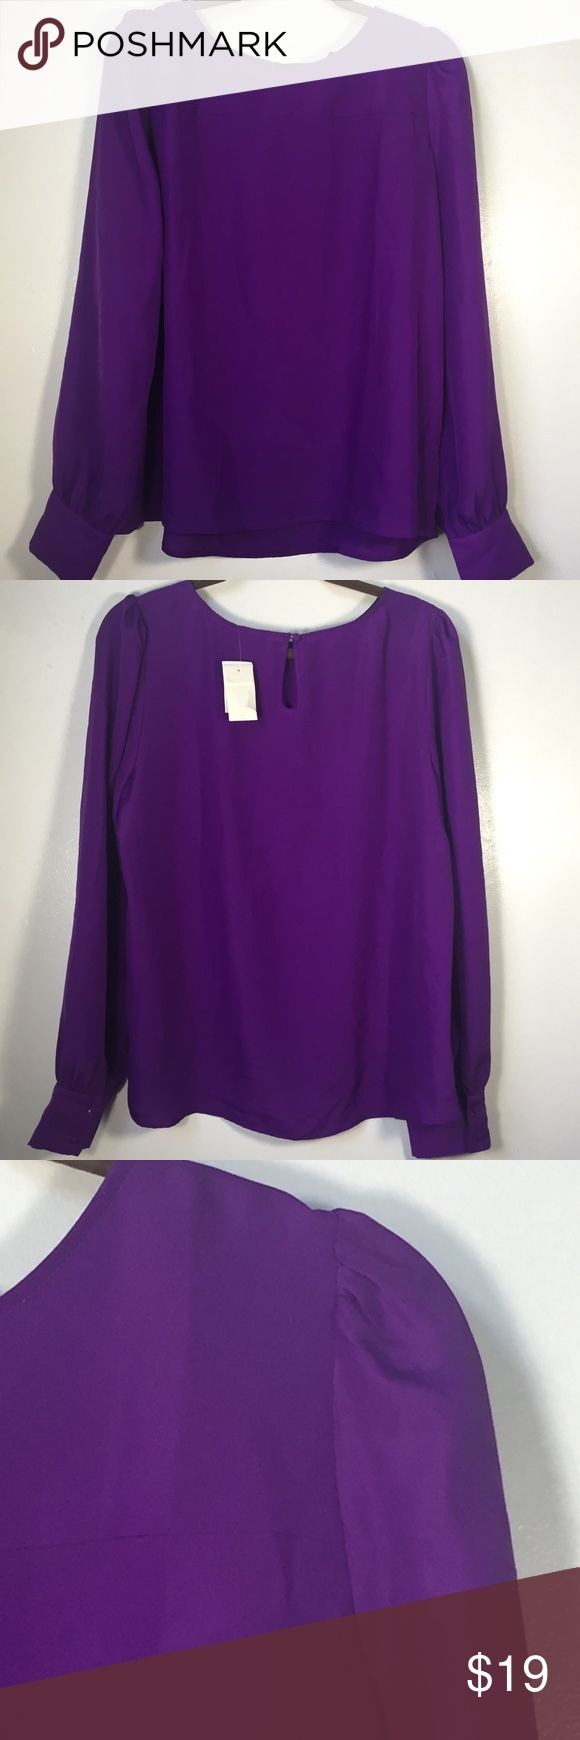 "J crew factory women's Blouse purple size large • Brand: j crew  • Condition: new with tags • Measurements taken laying flat:  • armpit to armpit: 22.5"" • Length: 25.5"" • Sleeves( from shoulder seam to cuff): 27"" J crew  Tops Blouses"